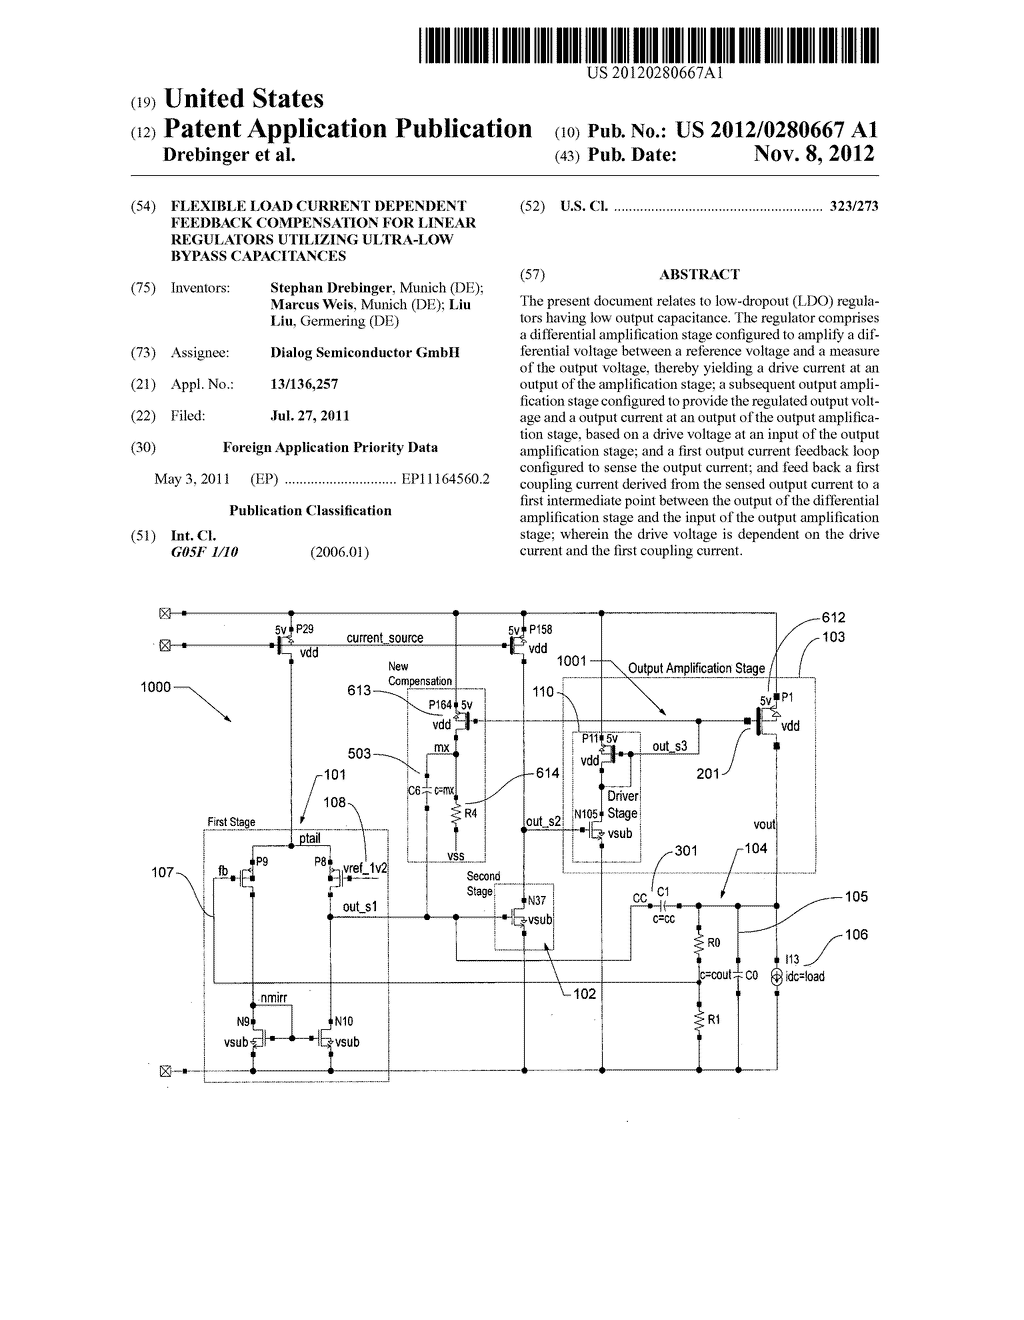 Flexible load current dependent feedback compensation for linear     regulators utilizing ultra-low bypass capacitances - diagram, schematic, and image 01